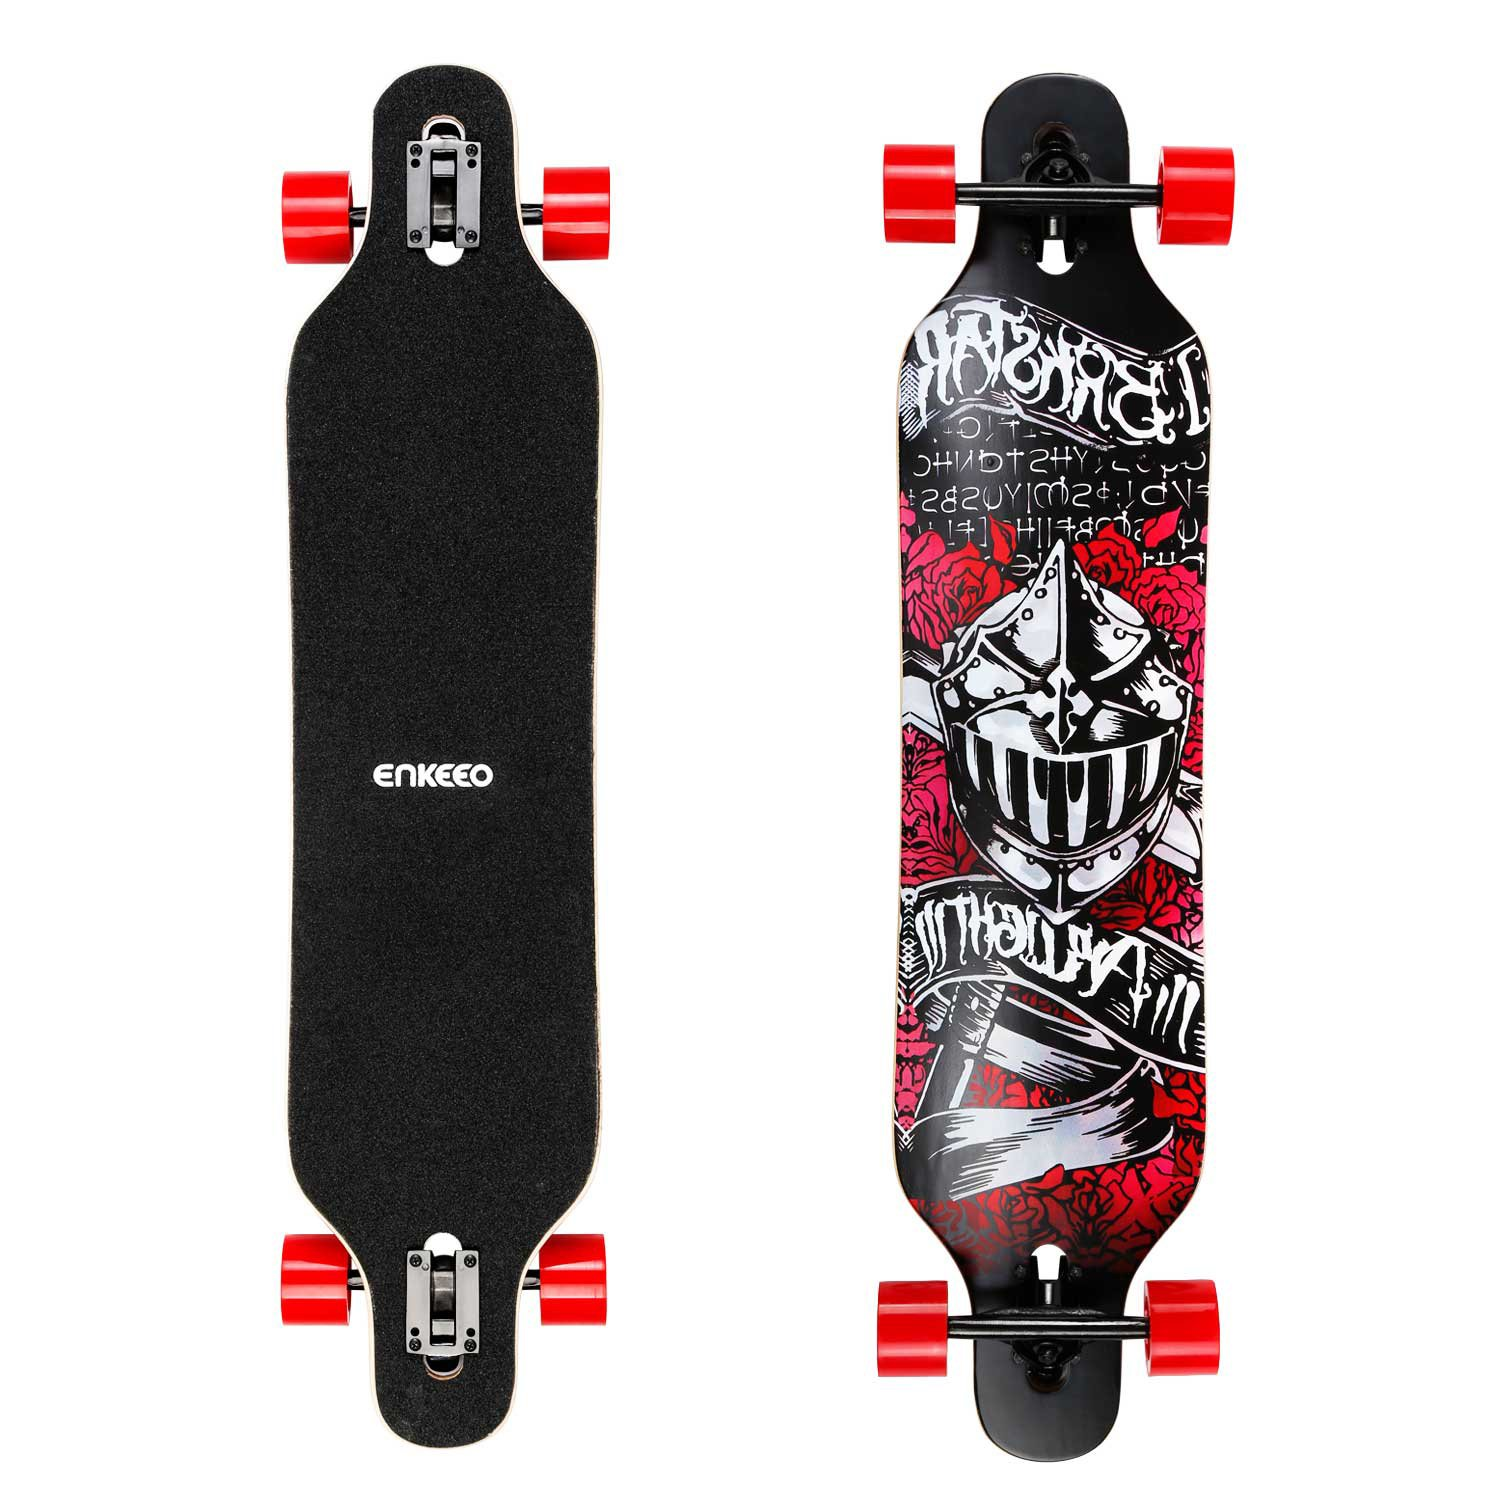 ENKEEO 40 Inch Drop-Through Longboard Skateboard Complete for Carving Downhill Cruising Freestyle Riding (Knight)